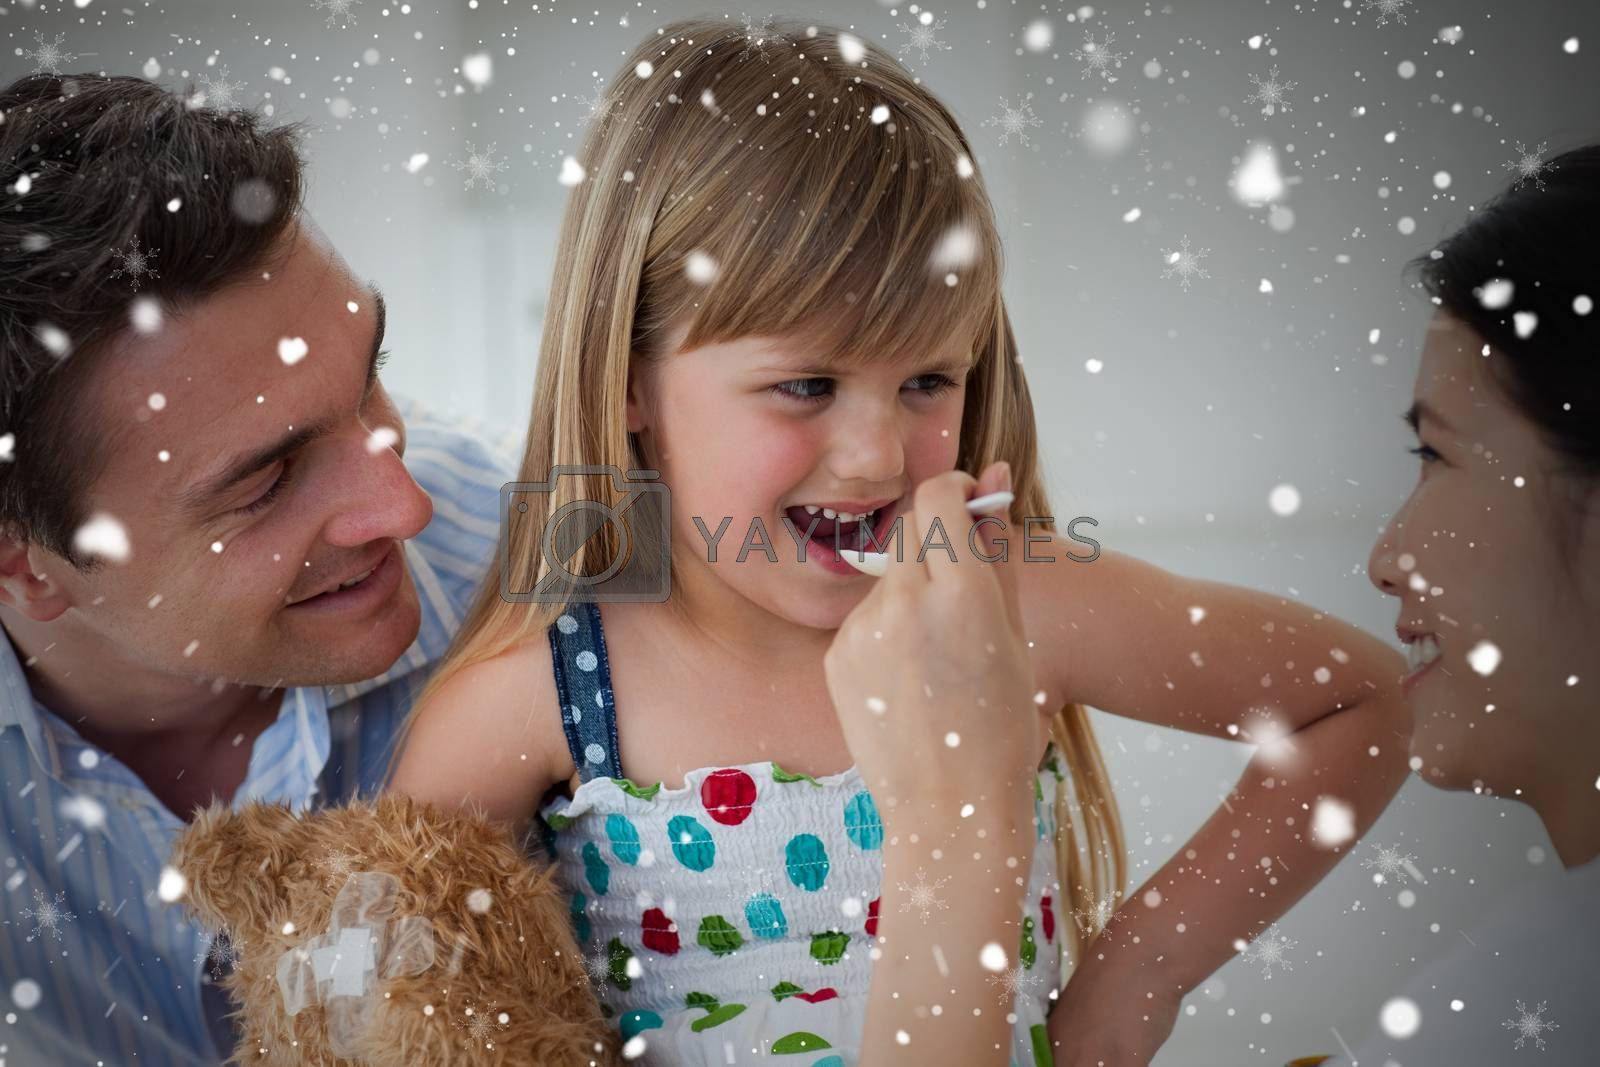 Composite image of smiling doctor giving medicine to a child against snow falling